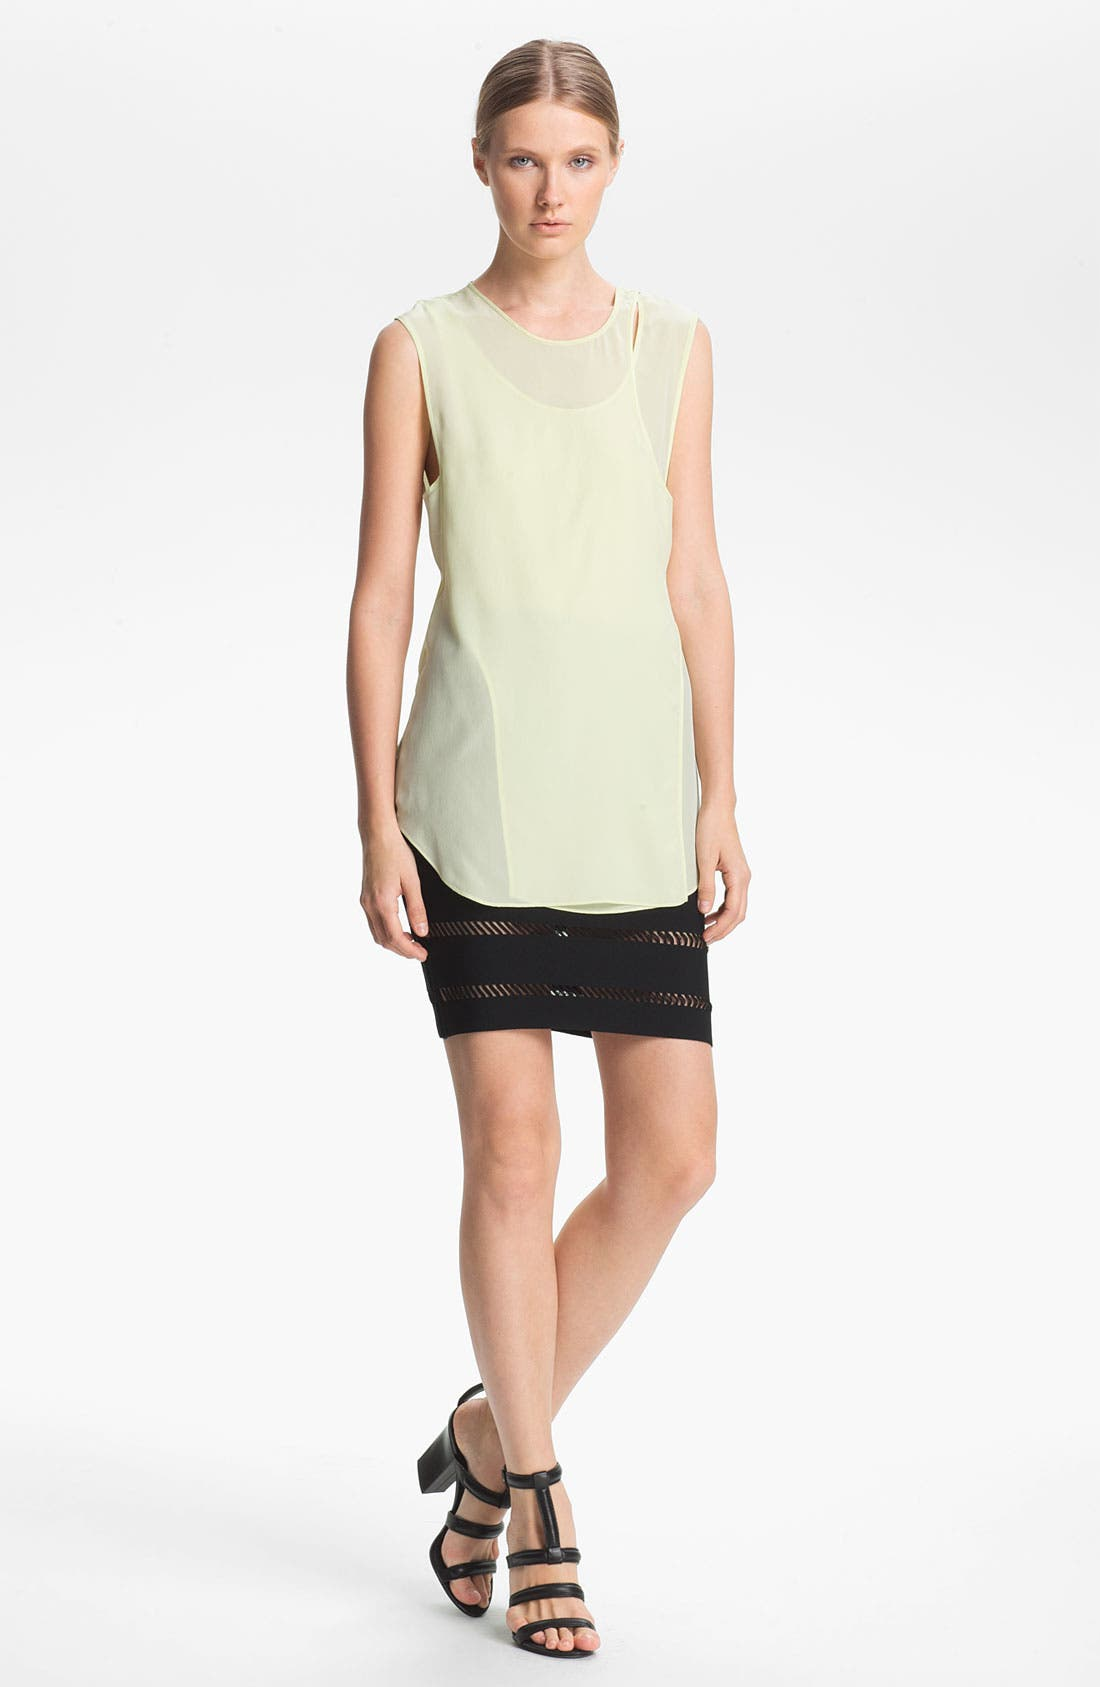 Alternate Image 1 Selected - Alexander Wang Overlapping Crêpe de Chine Tank